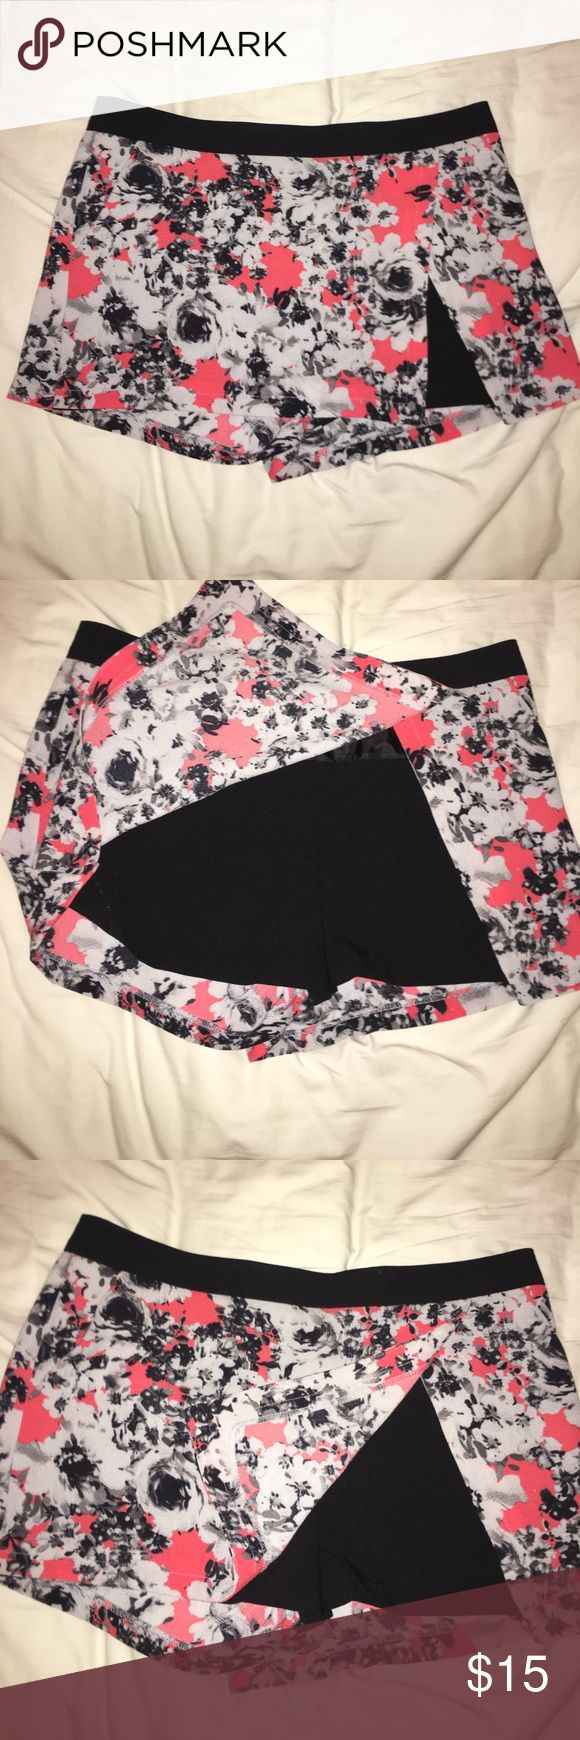 Primark floral skort Brand new with tags floral skirt. Black shorts under the front and floral shorts in the back. UK size 16 - US size 12. Would say it fits closer to an 8/10. That's why it's listed as a 10. From Primark in London. primark Skirts Mini